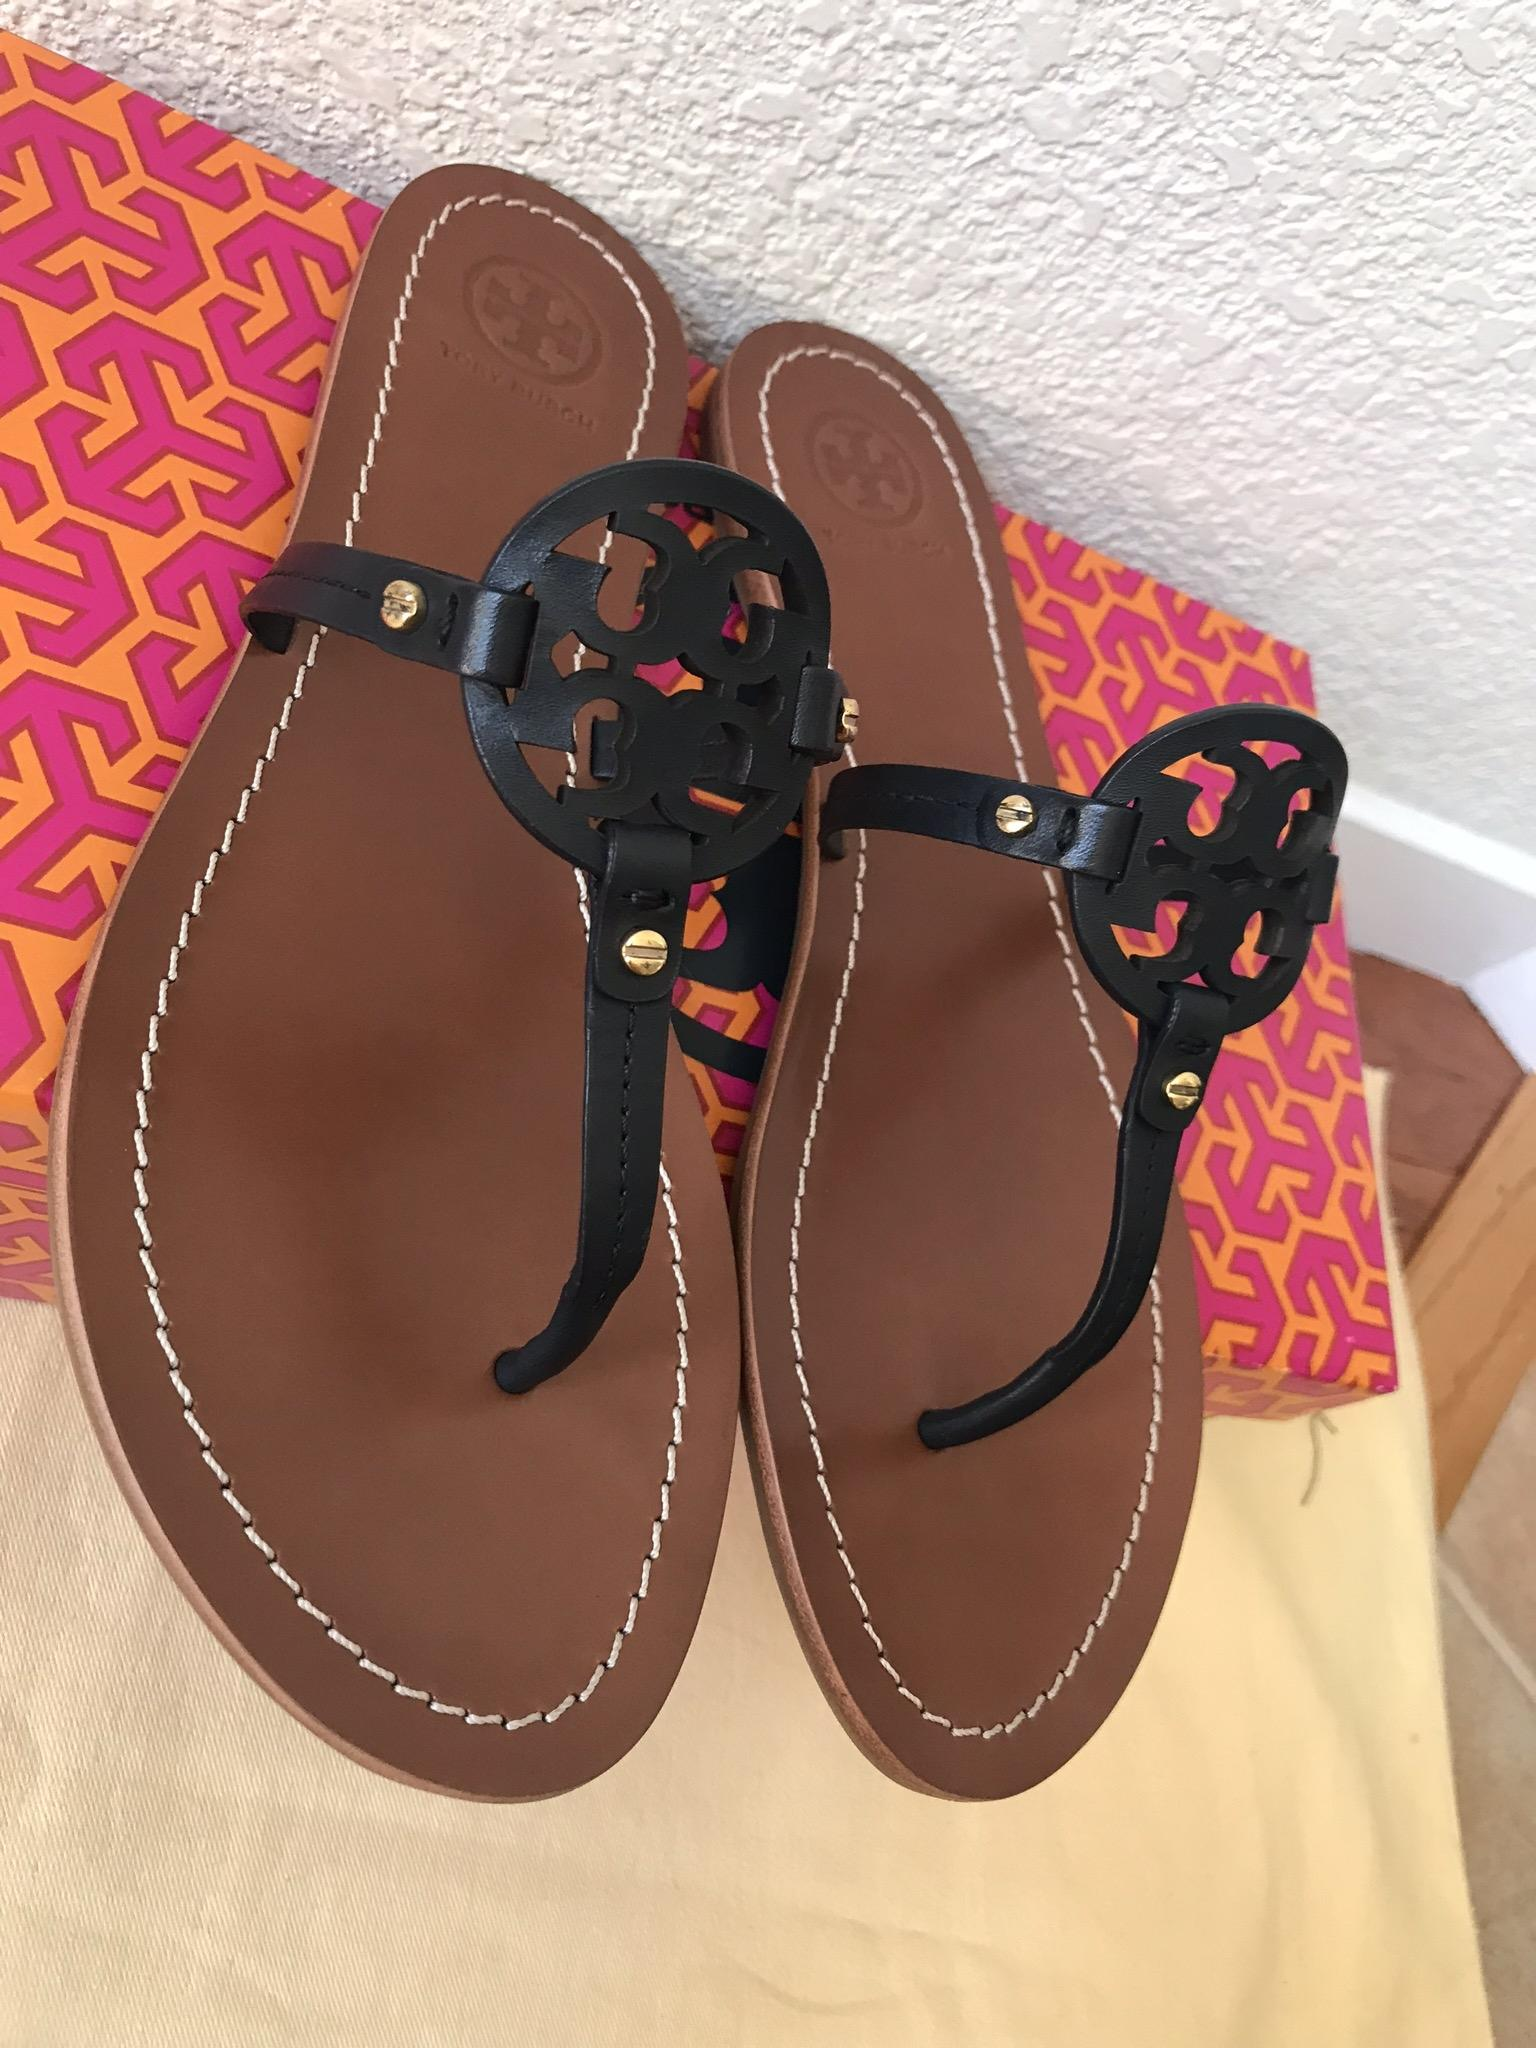 e30fba9420da ... Tory Tory Tory Burch Blue 8.5m Mini Miller Flat Sandals Size US 8.5  Regular ...